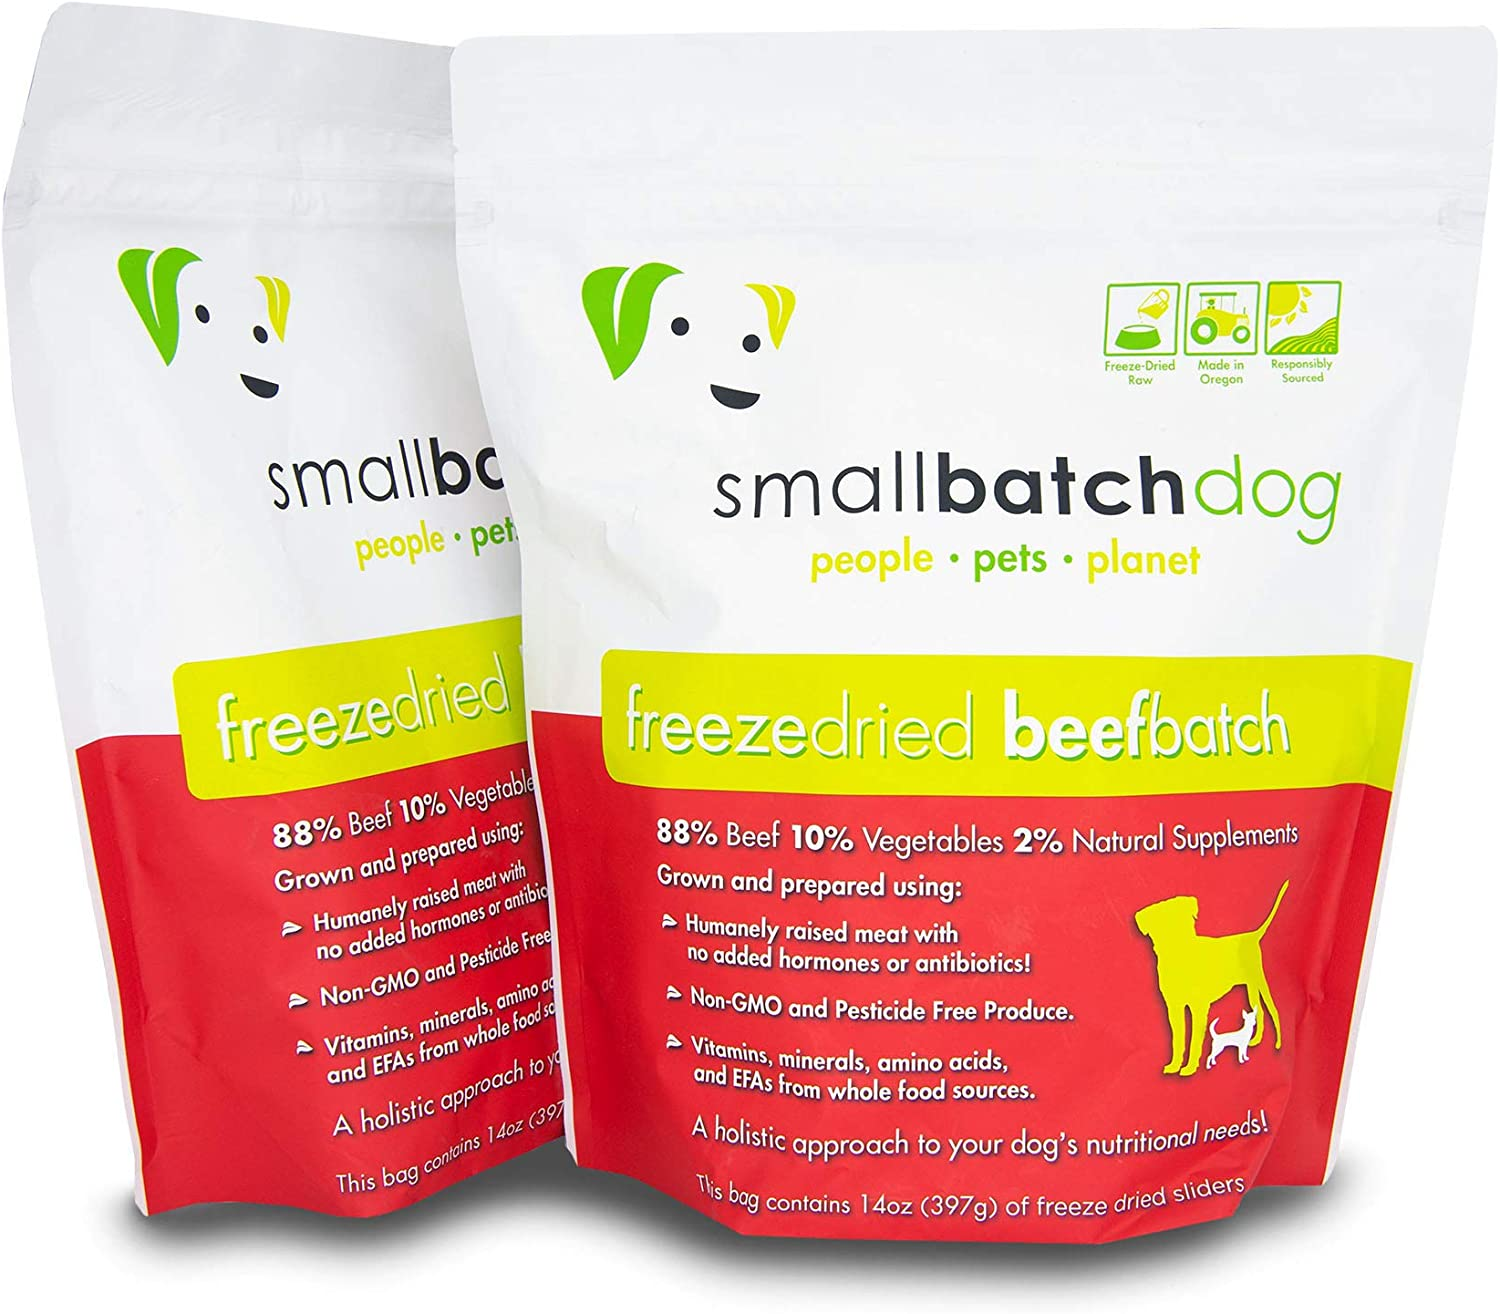 Smallbatch Pets Freeze-Dried Premium Raw Food Diet for Dogs, 2-Pack, Beef Recipe, 14 oz in Each Bag (28 oz Total), Made in The USA, Organic Produce, Humanely Raised Meat, Hydrate and Serve Patties